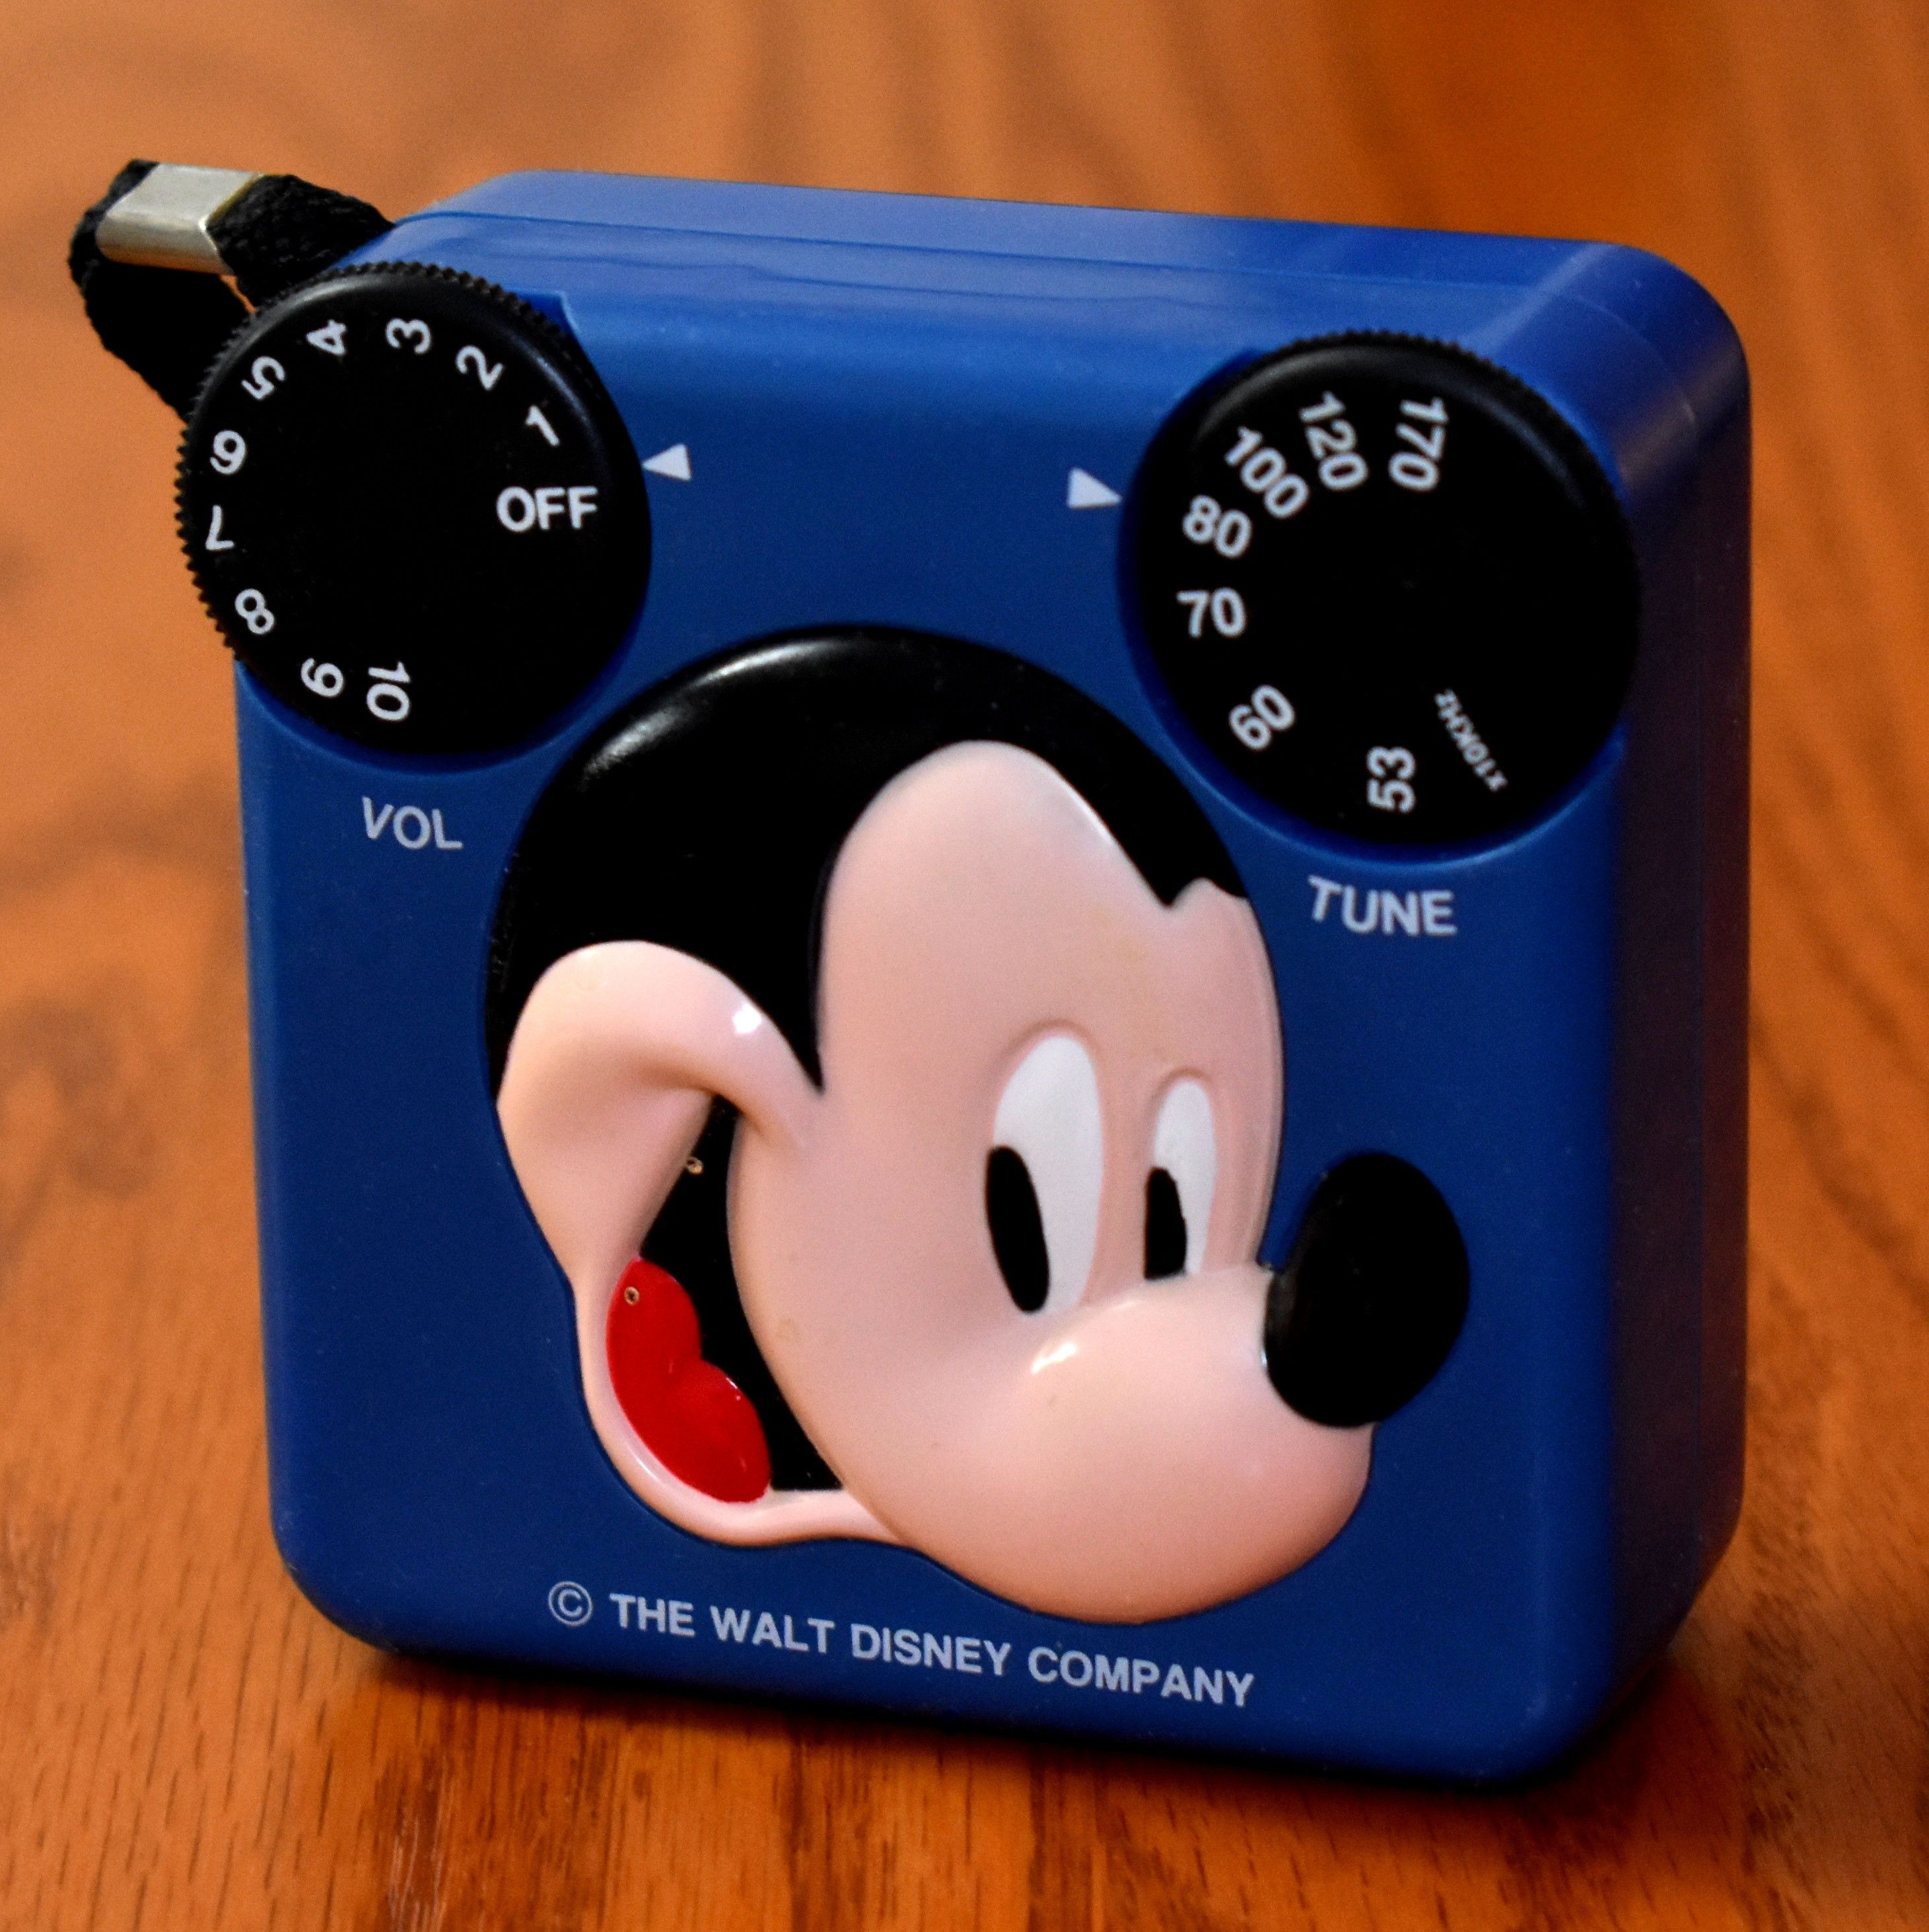 Vintage Mickey Mouse Novelty Radio Model No 12 909 Am Band Copyright Walt Disney Productions Sold By Radio Shack Made In China Circa 1989 In 2020 Vintage Mickey Mouse Vintage Mickey Radio Shack